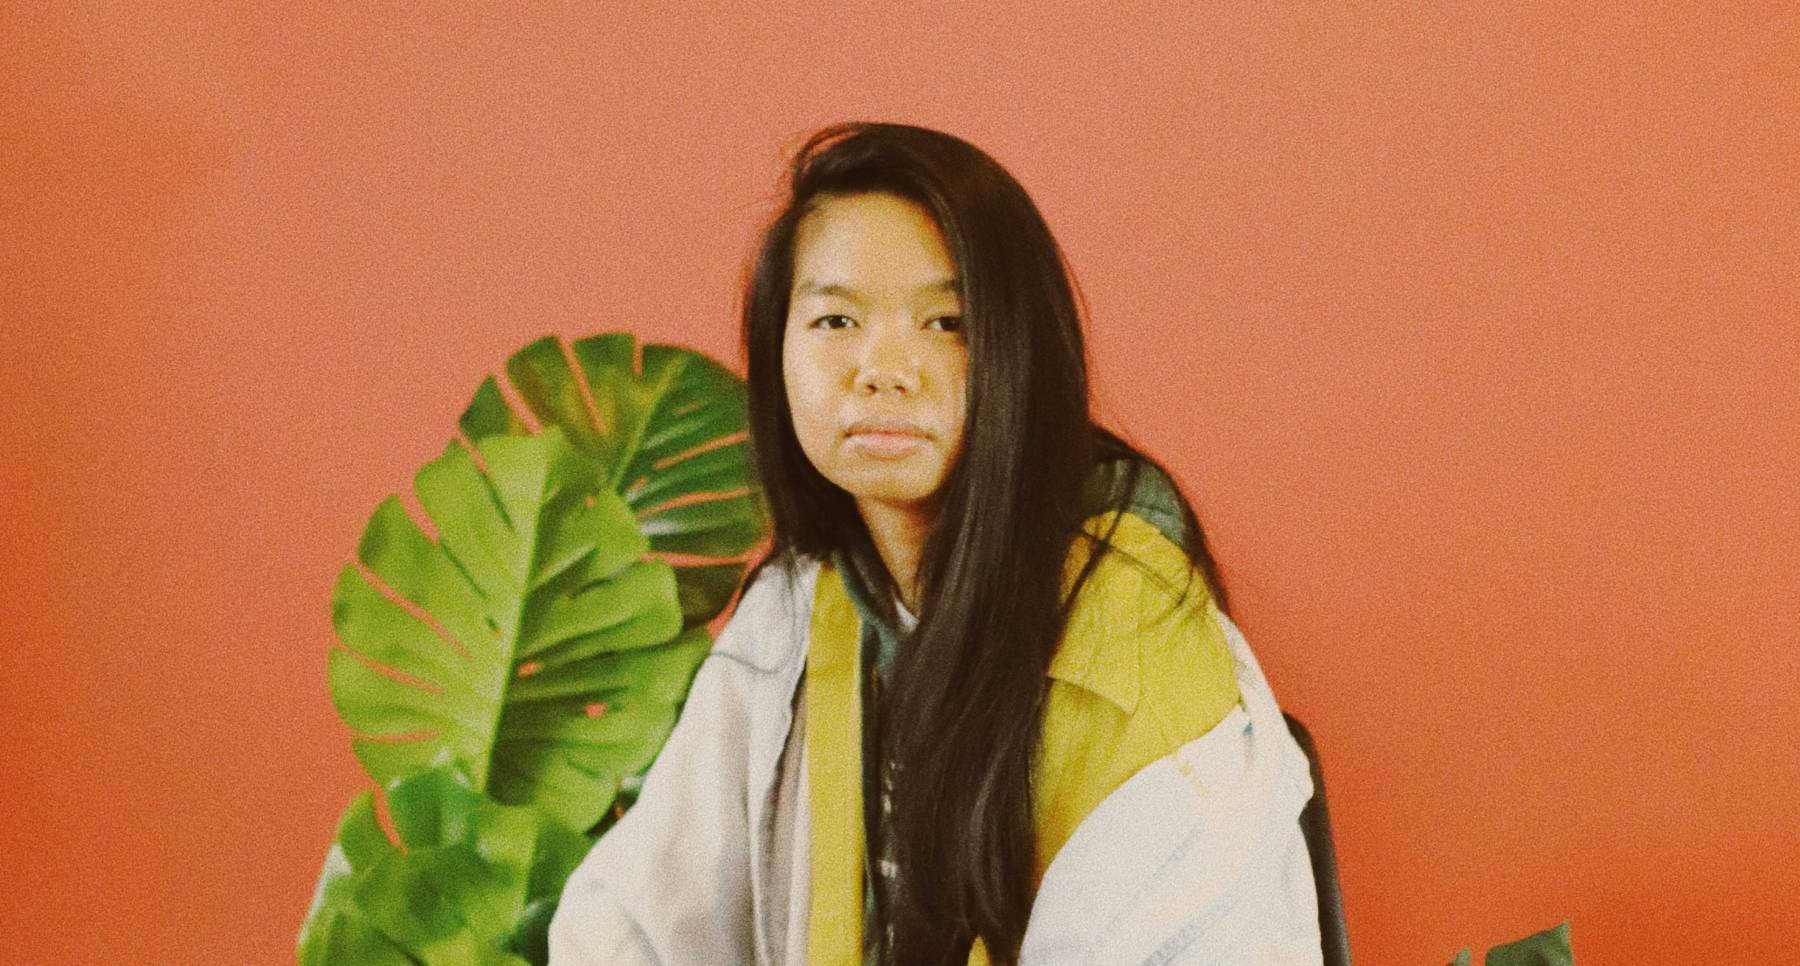 Allison Masangkay (aka DJ Phenohype), a Filipinx femme, sits in a chair wearing an outfit of yellows, greens, lavender, and light wash denim blue with a warm orange backdrop, surrounded by several green plants. They look directly at the camera with a serious expression and their hands resting on their knees. Photo by Bianca Recuenco.